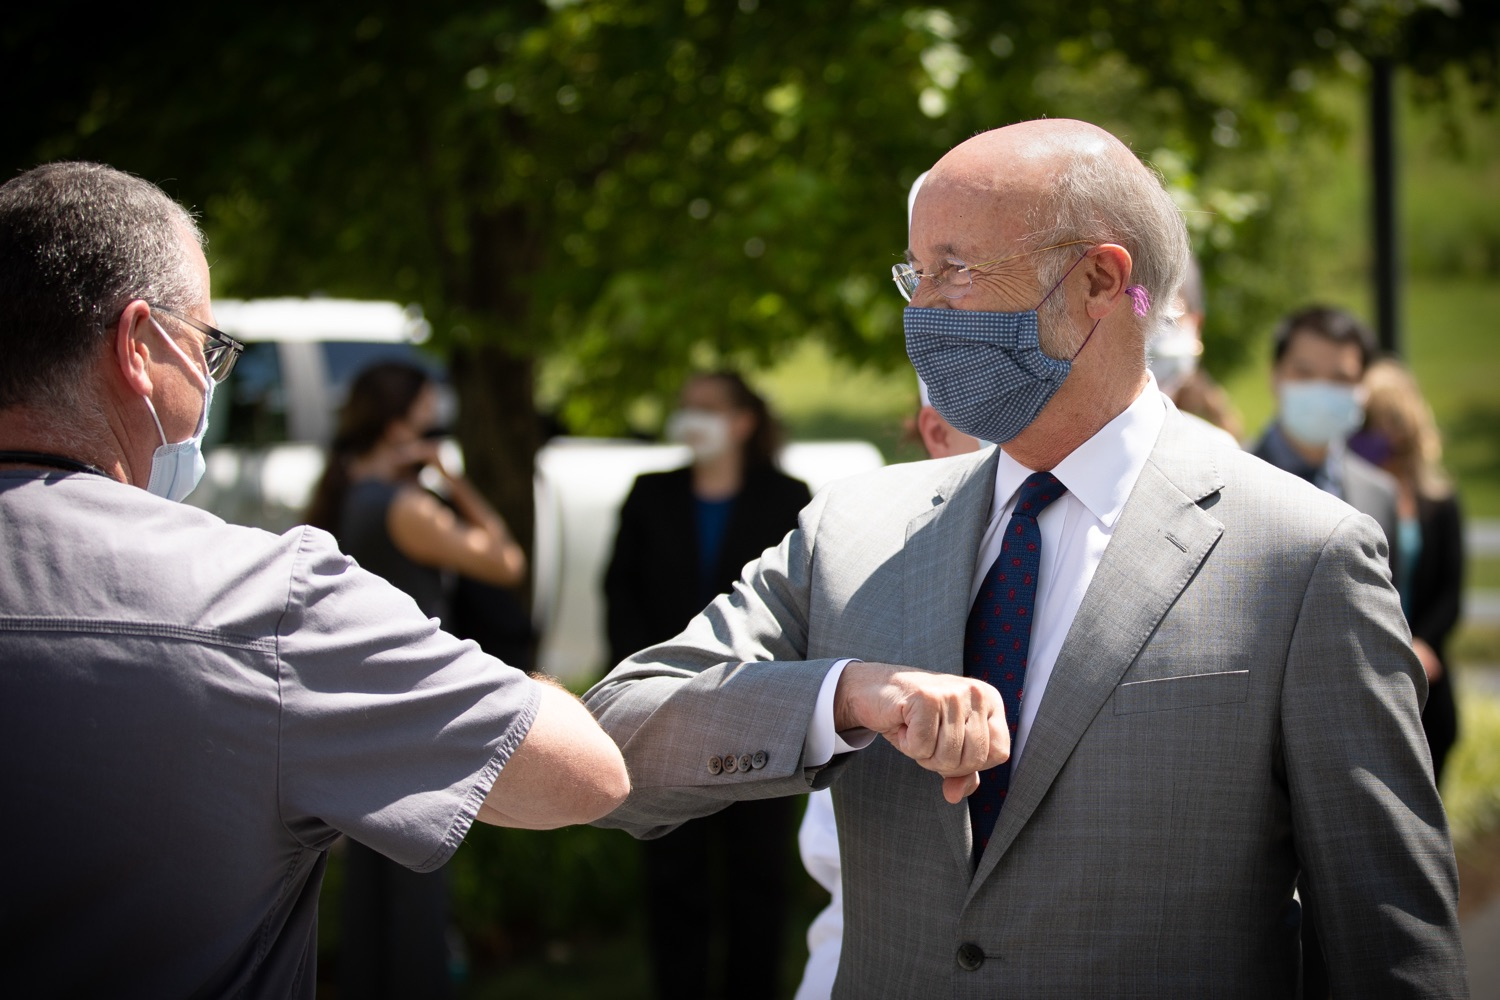 "<a href=""https://filesource.wostreaming.net/commonwealthofpa/photo/18093_gov-healthcare_workers_dz_03.jpg"" target=""_blank"">⇣ Download Photo<br></a>Pennsylvania Governor Tom Wolf bumping elbows with medical workers during his visit to Milton S. Hershey Medical Center. As the commonwealth continues its measured, phased reopening and COVID-19 case counts continue to decline, Governor Tom Wolf visited Penn State Milton S. Hershey Medical Center today to thank staff and learn more about how the facility is handling the pandemic and preparing for a possible resurgence in the fall.  Harrisburg, PA  June 24, 2020"